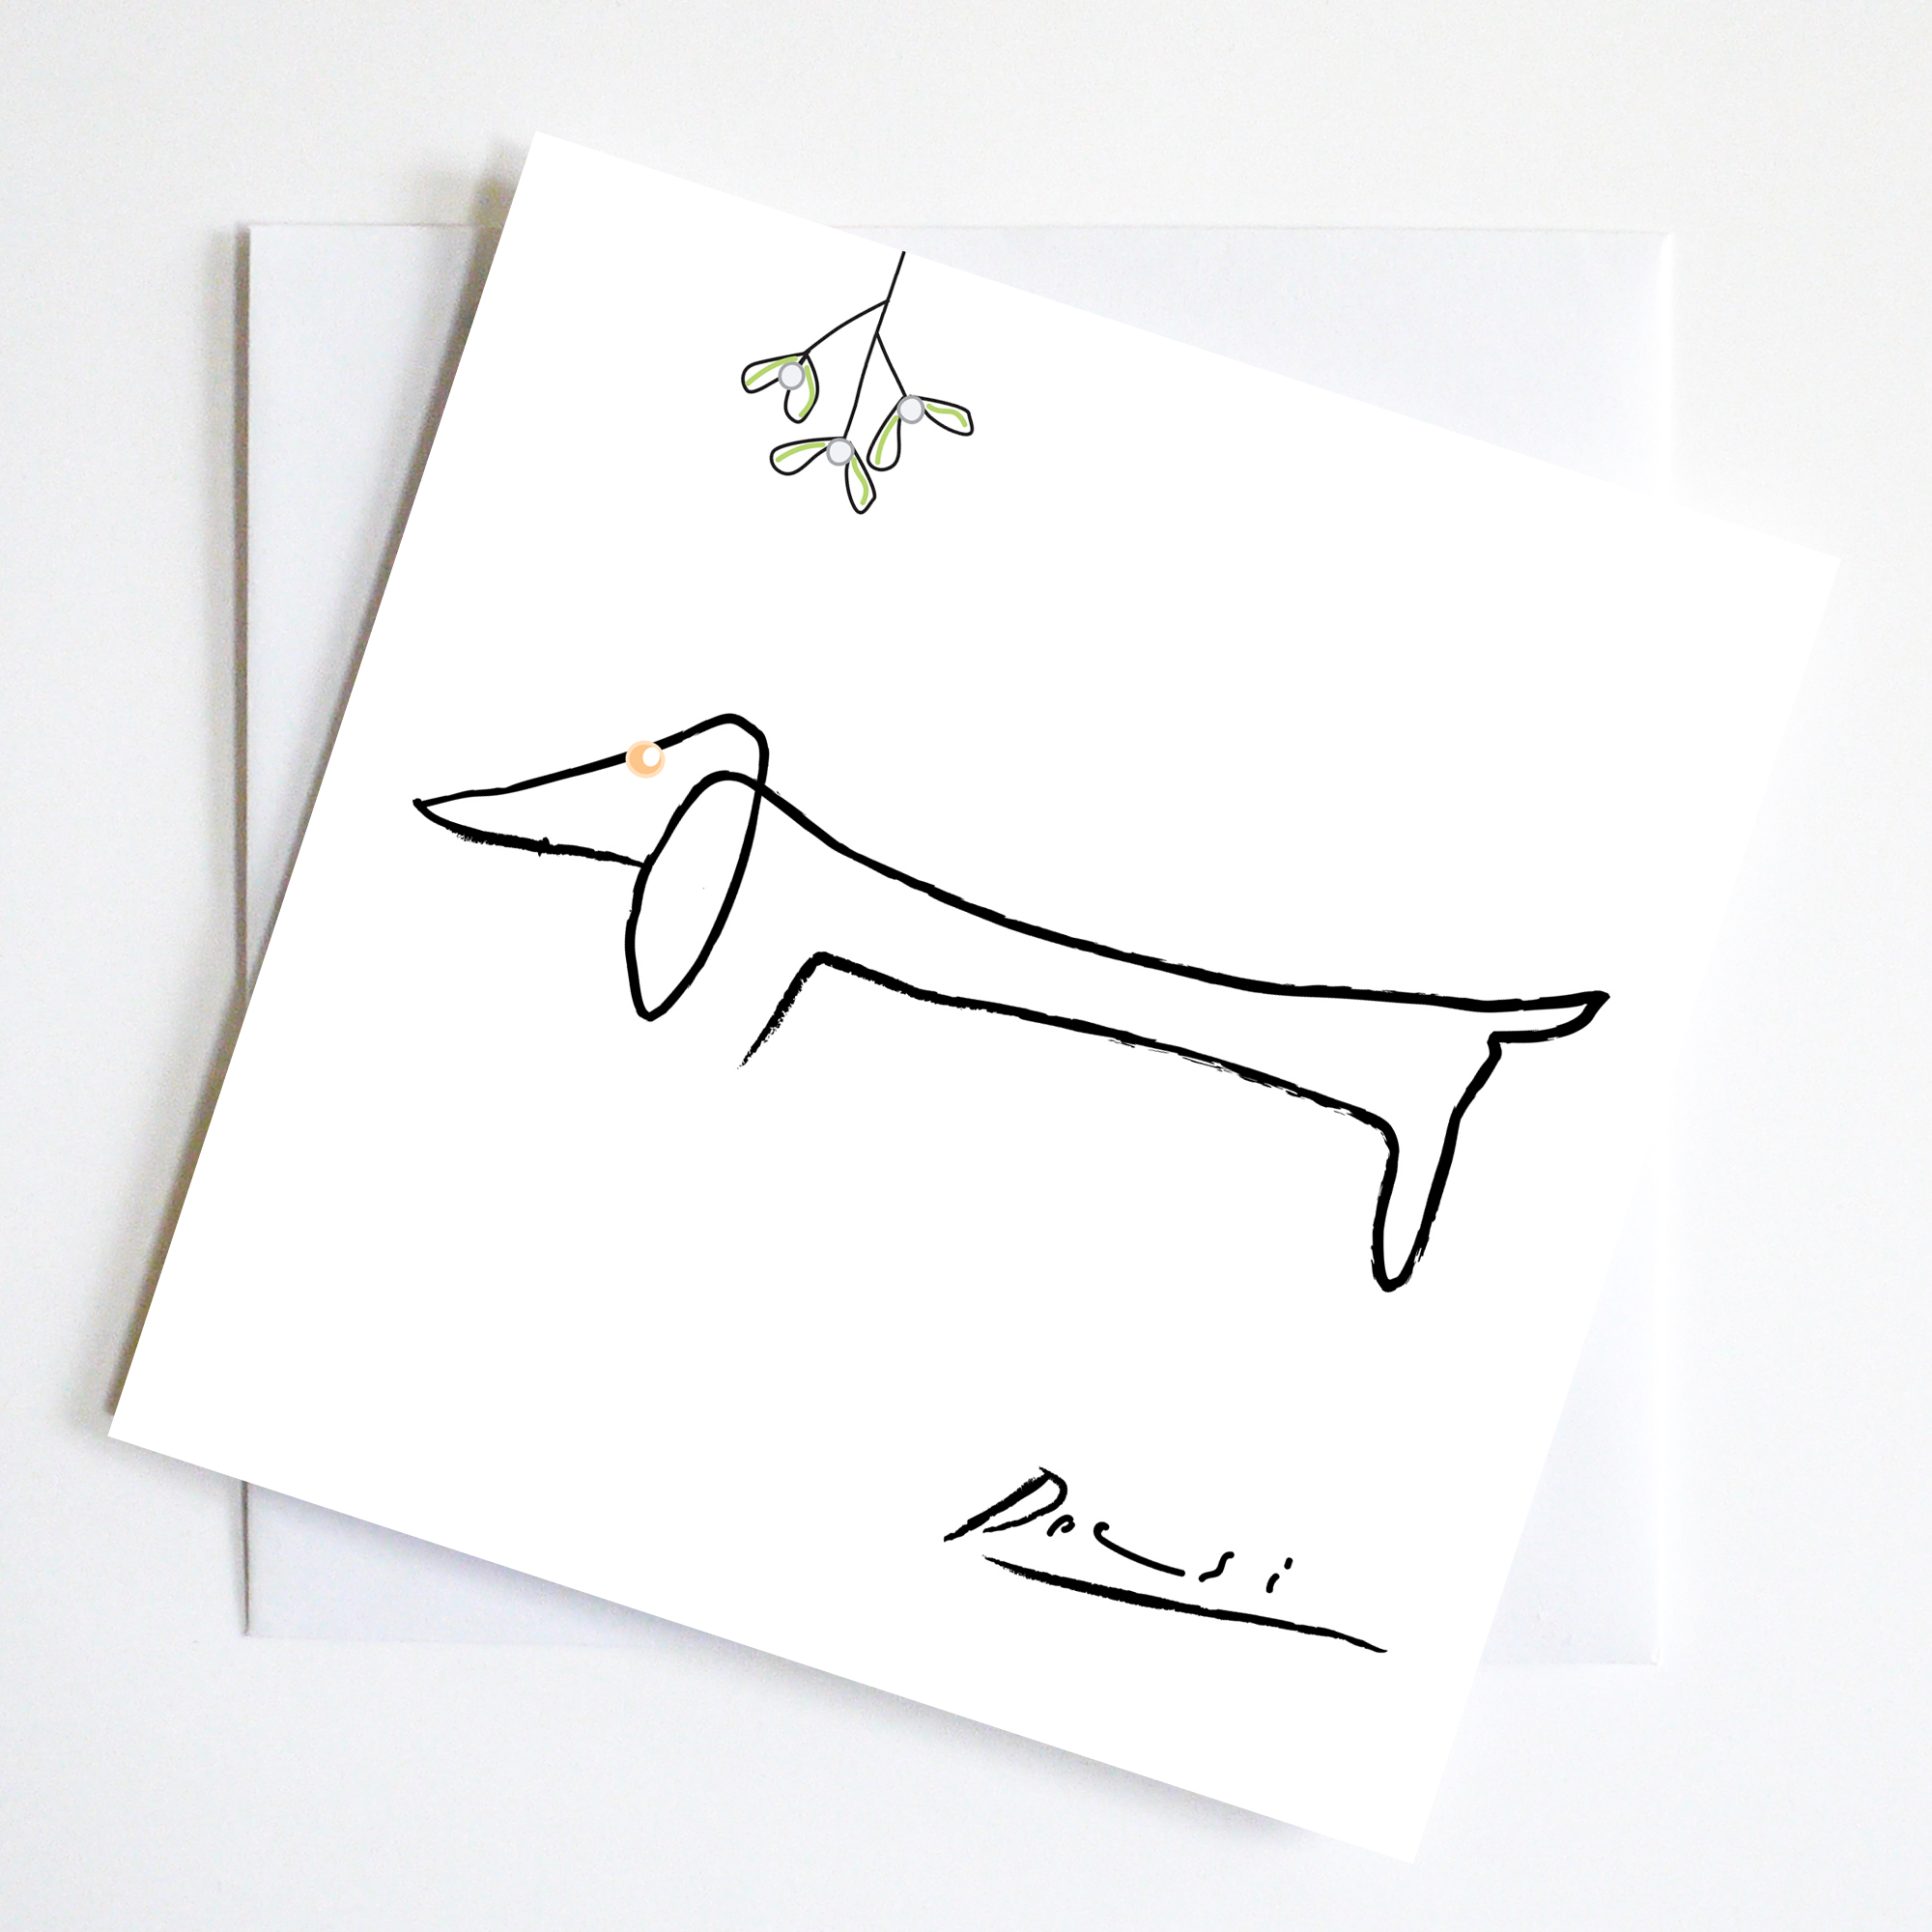 Pablo Picasso's line drawing of his dachshund. With a bit of mistletoe becomes a Christmas Greeting.